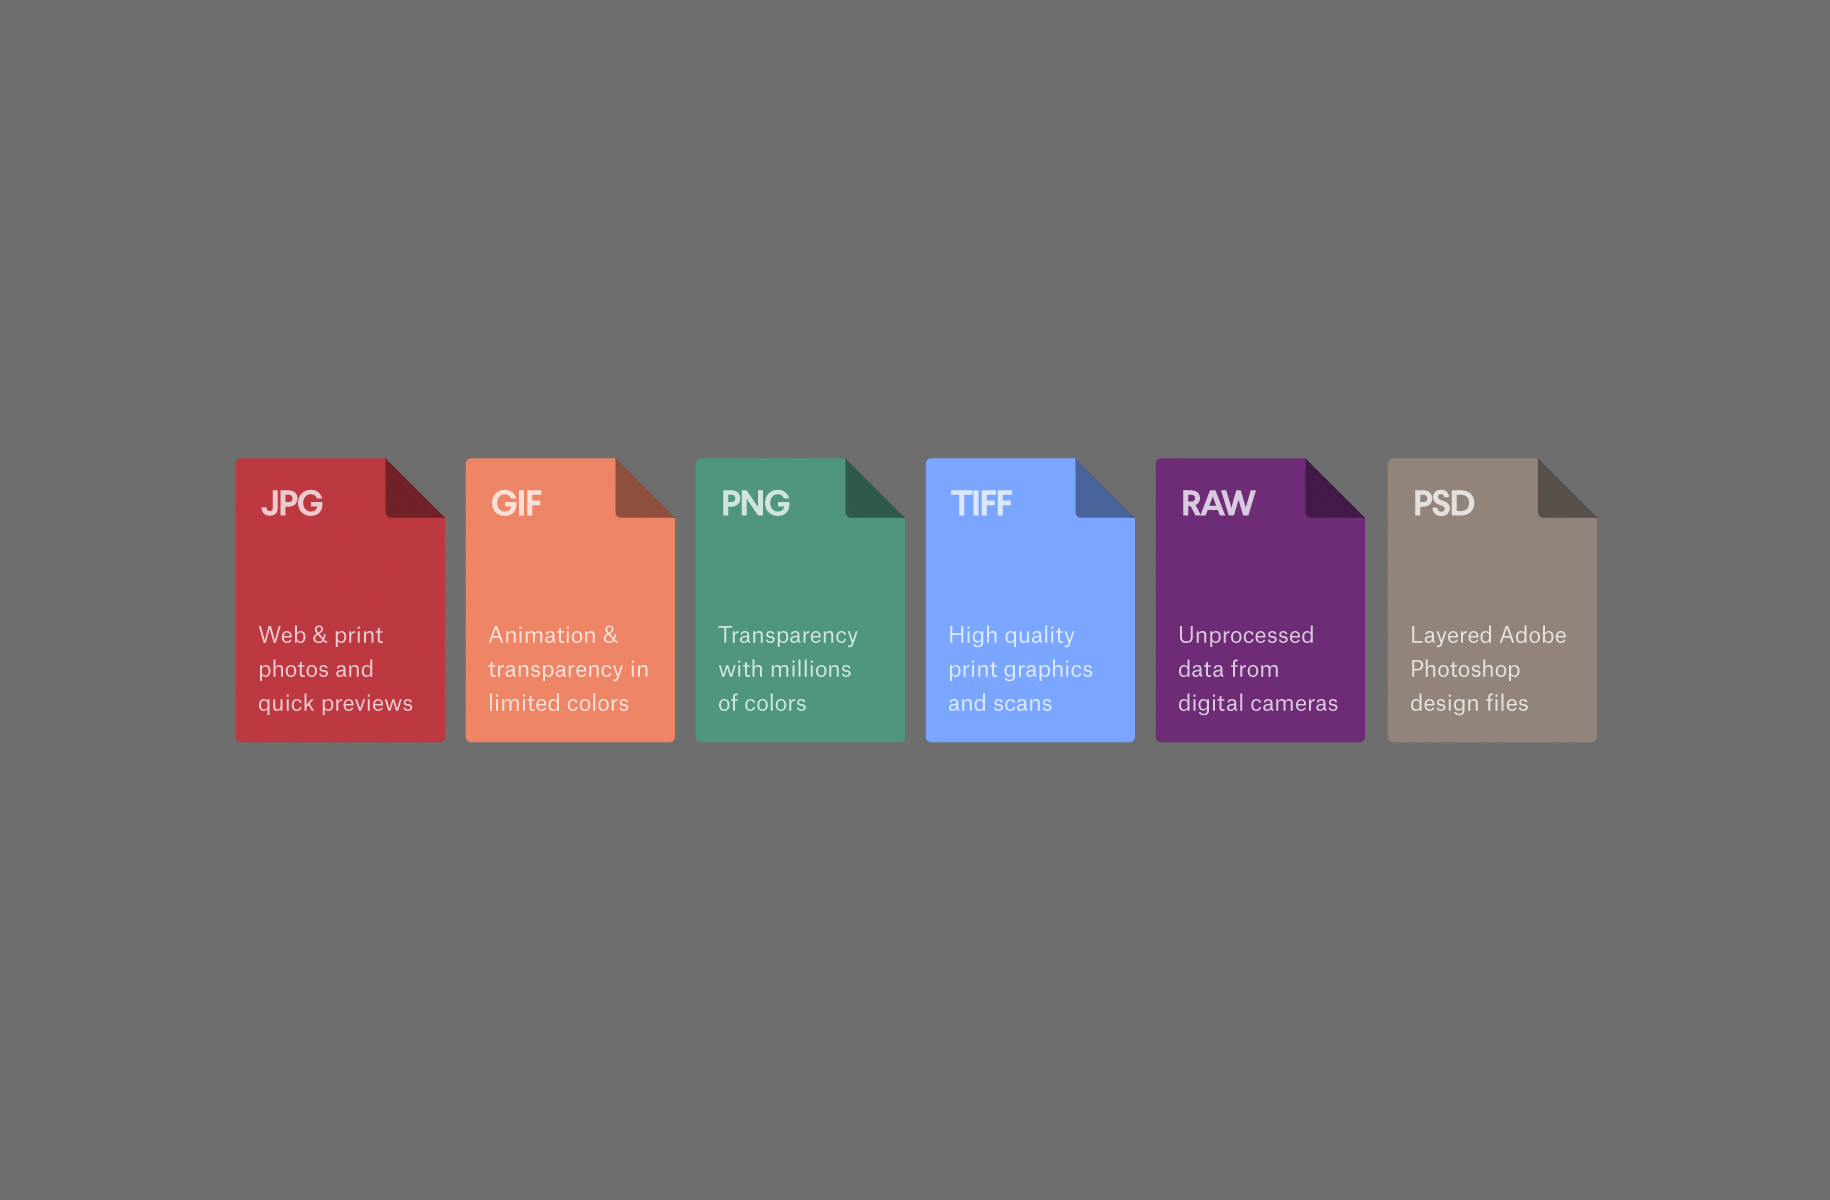 Image file formats: everything you\u0027ve ever wanted to know - 99designs